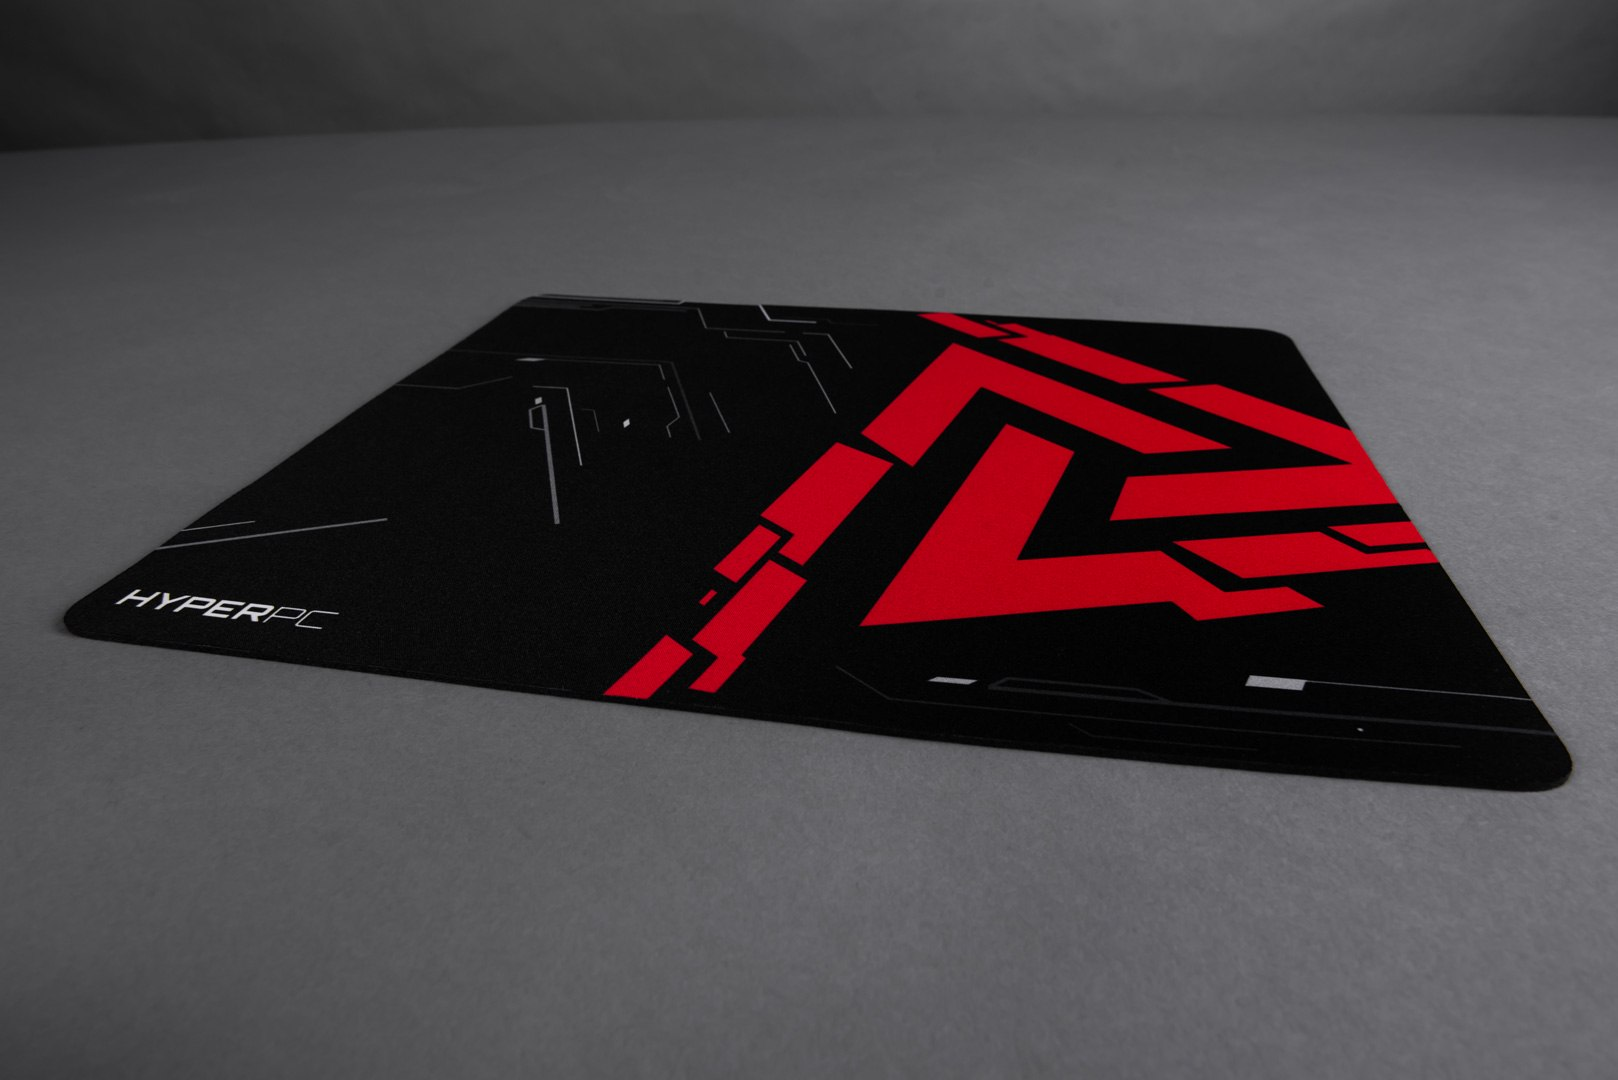 hyperpc mouse pad 04